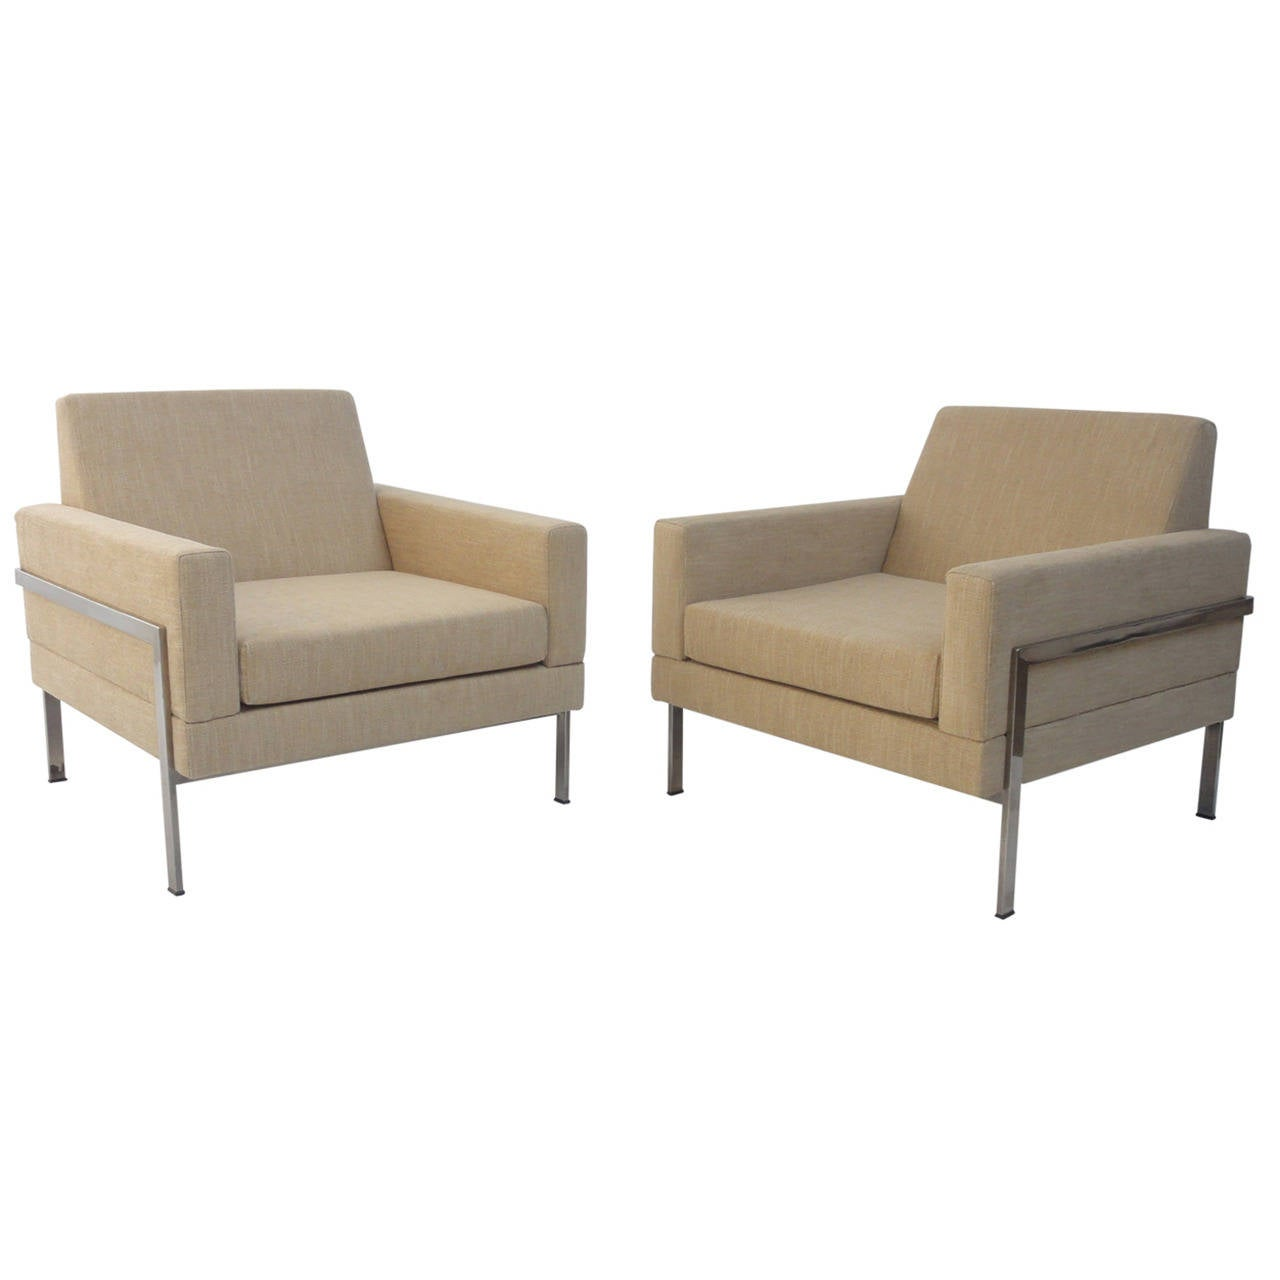 Pair of 1960s Cubic Lounge Chairs Attributed to Walter Knoll, Germany